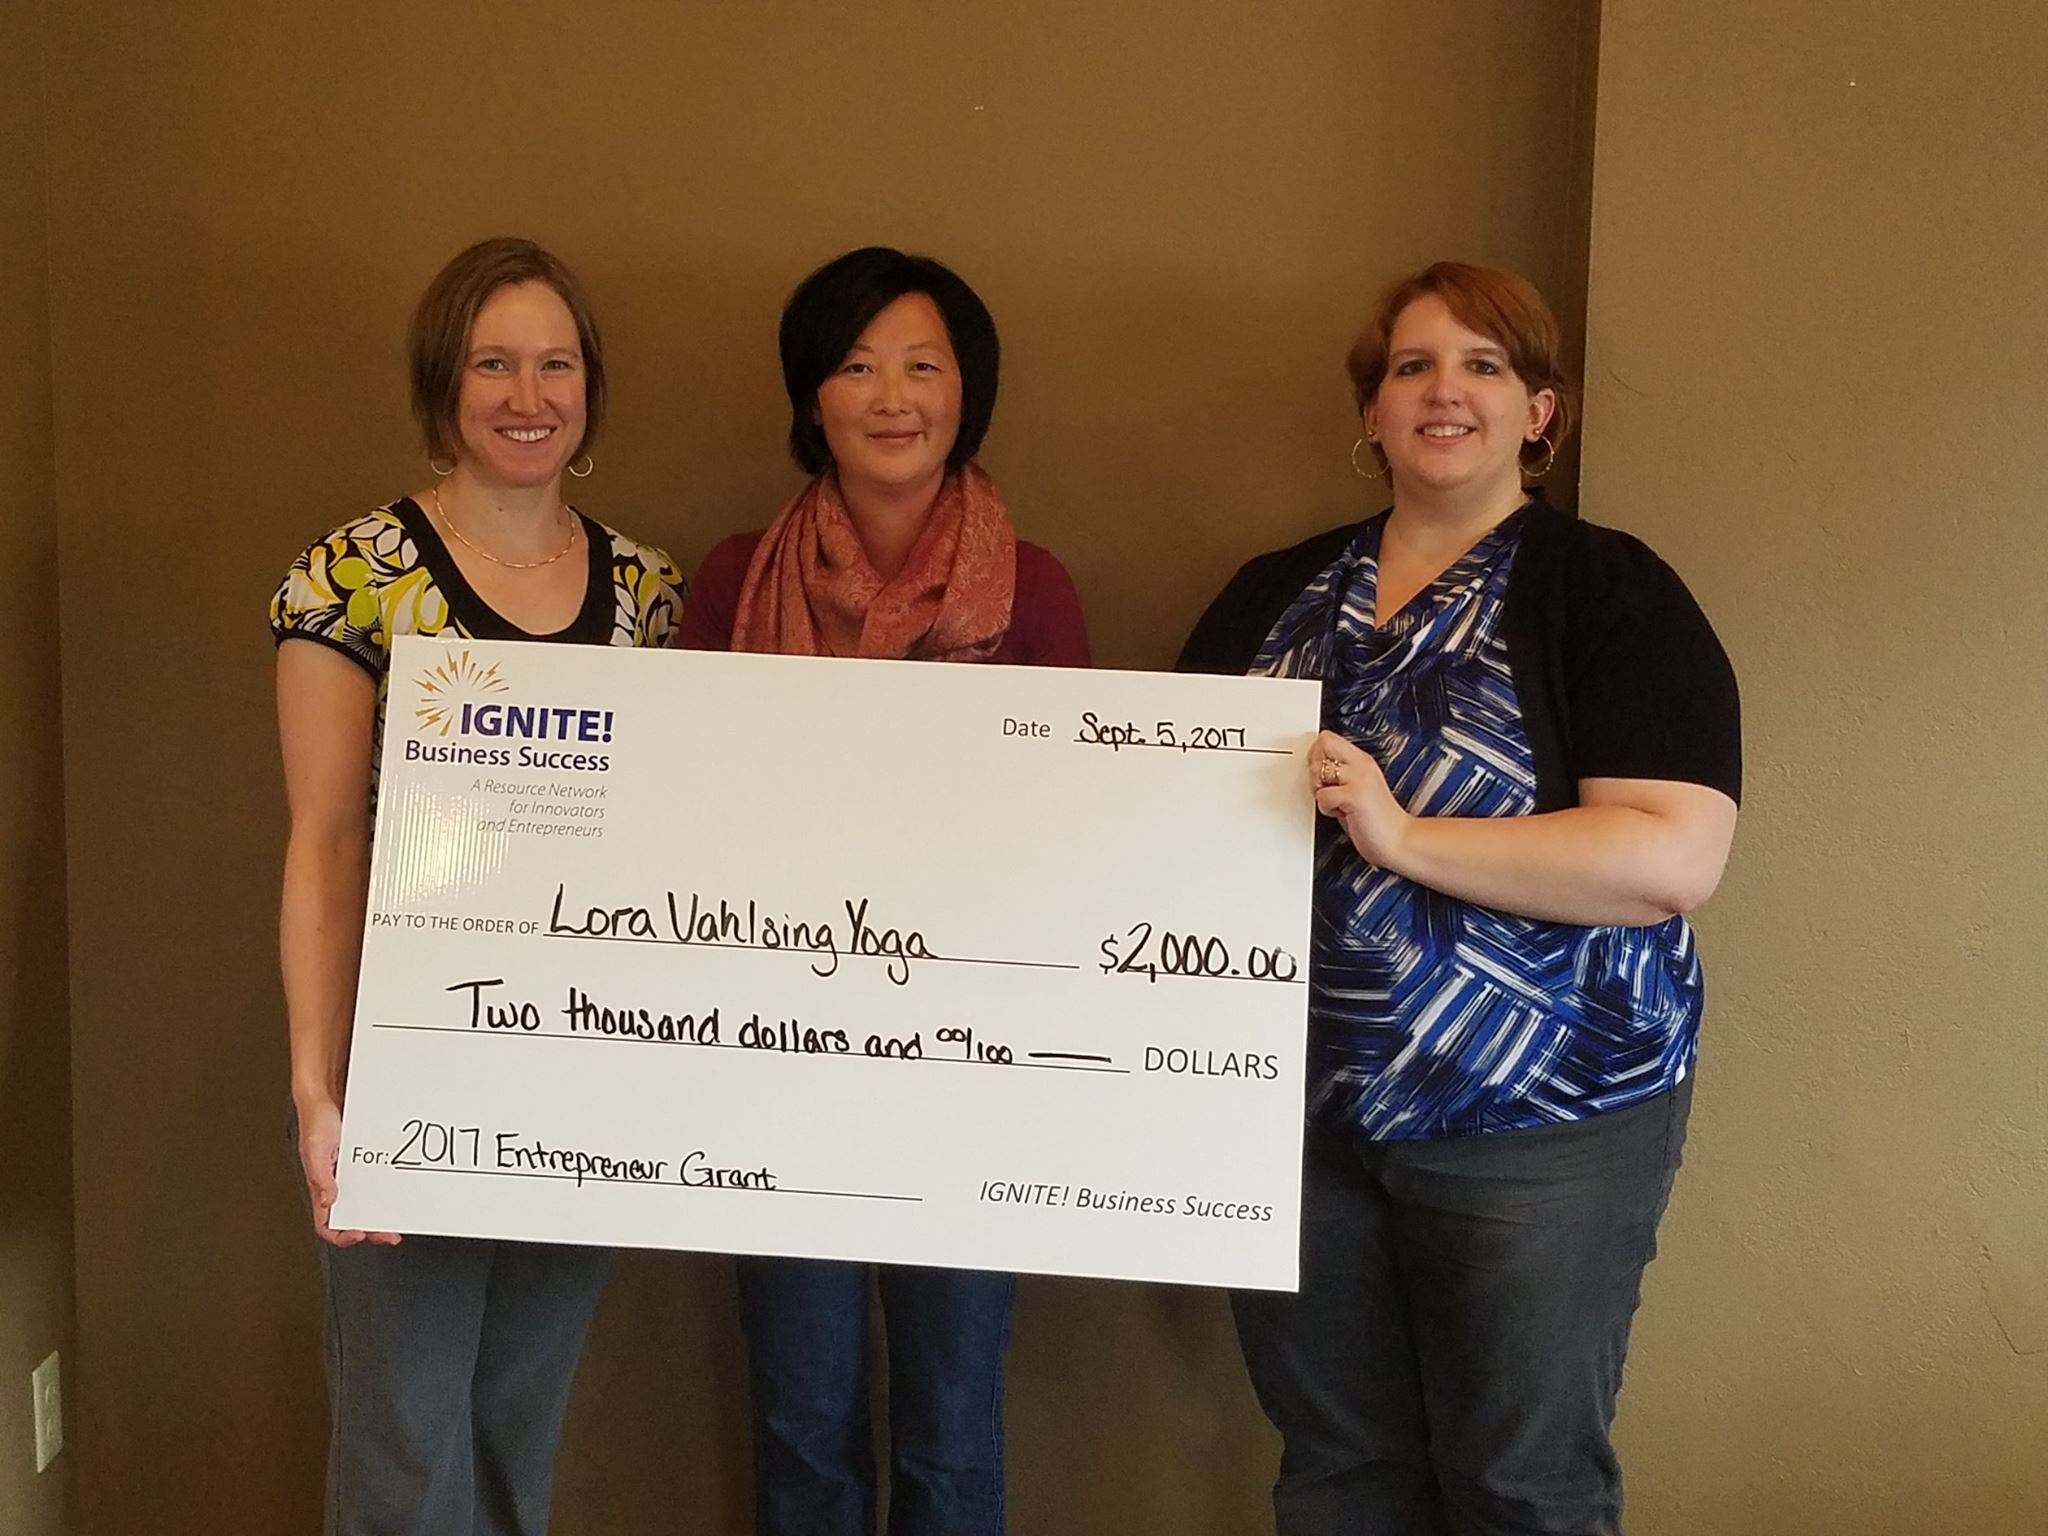 - IGNITE Business Success2017 Entrepreneur Grant recipient. Lora was awarded a $2,000 grant to use towards her Yoga business.